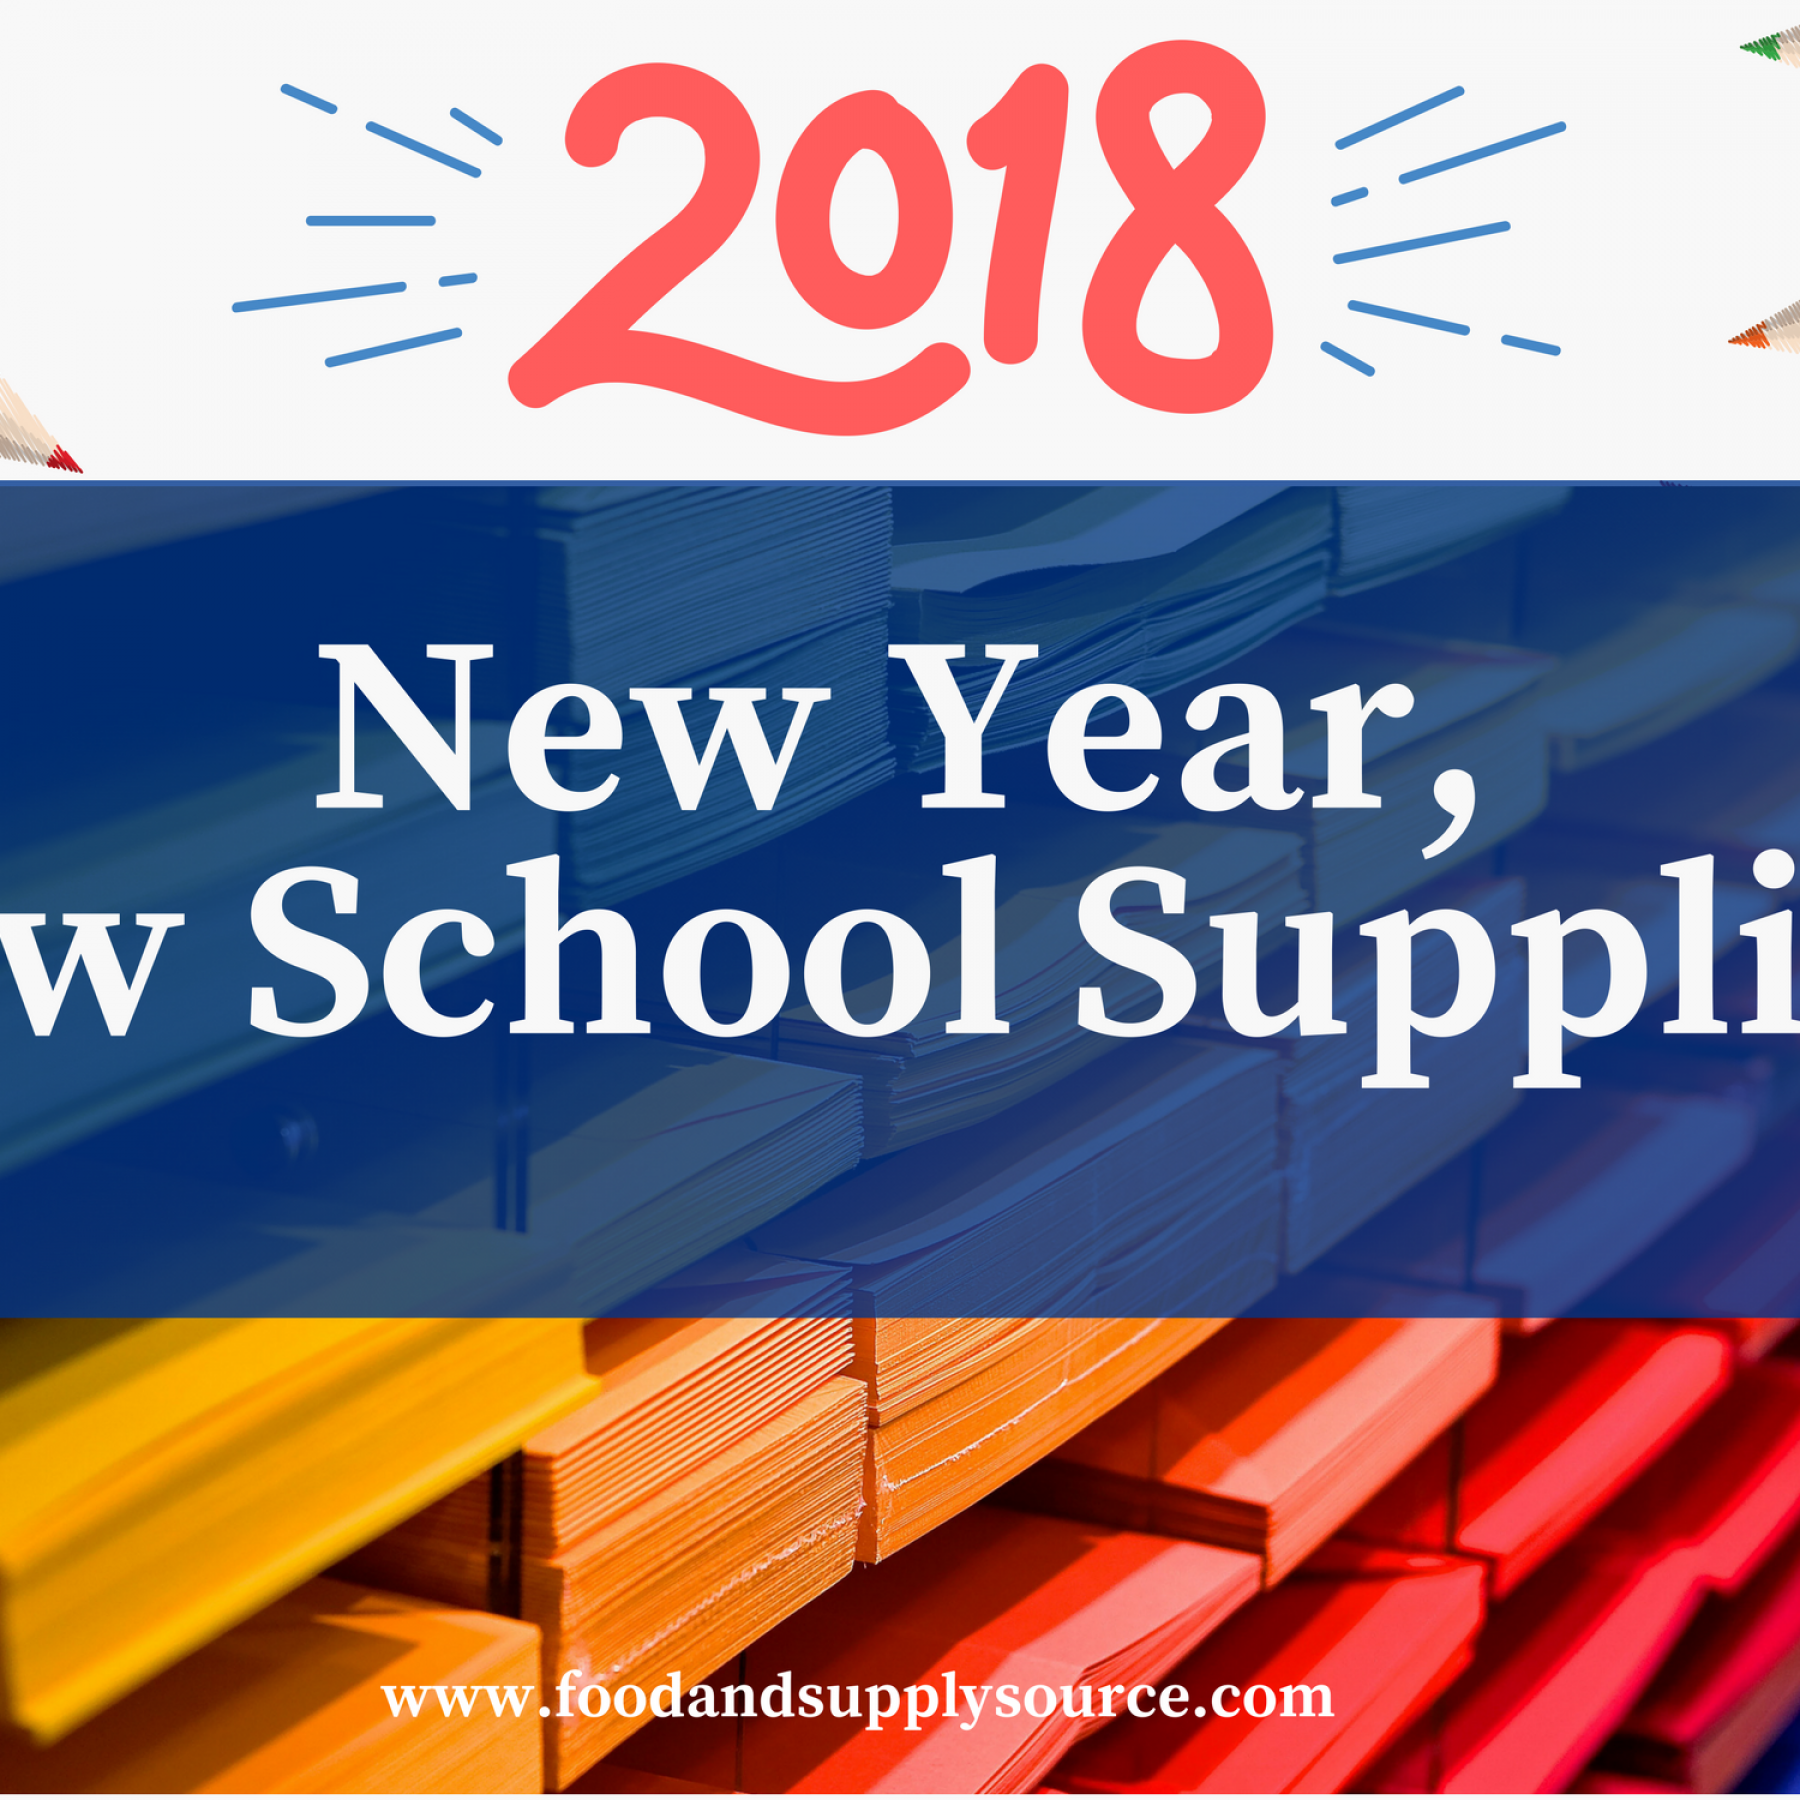 Food & Supply Source 2018 New Year, New School Supplies!